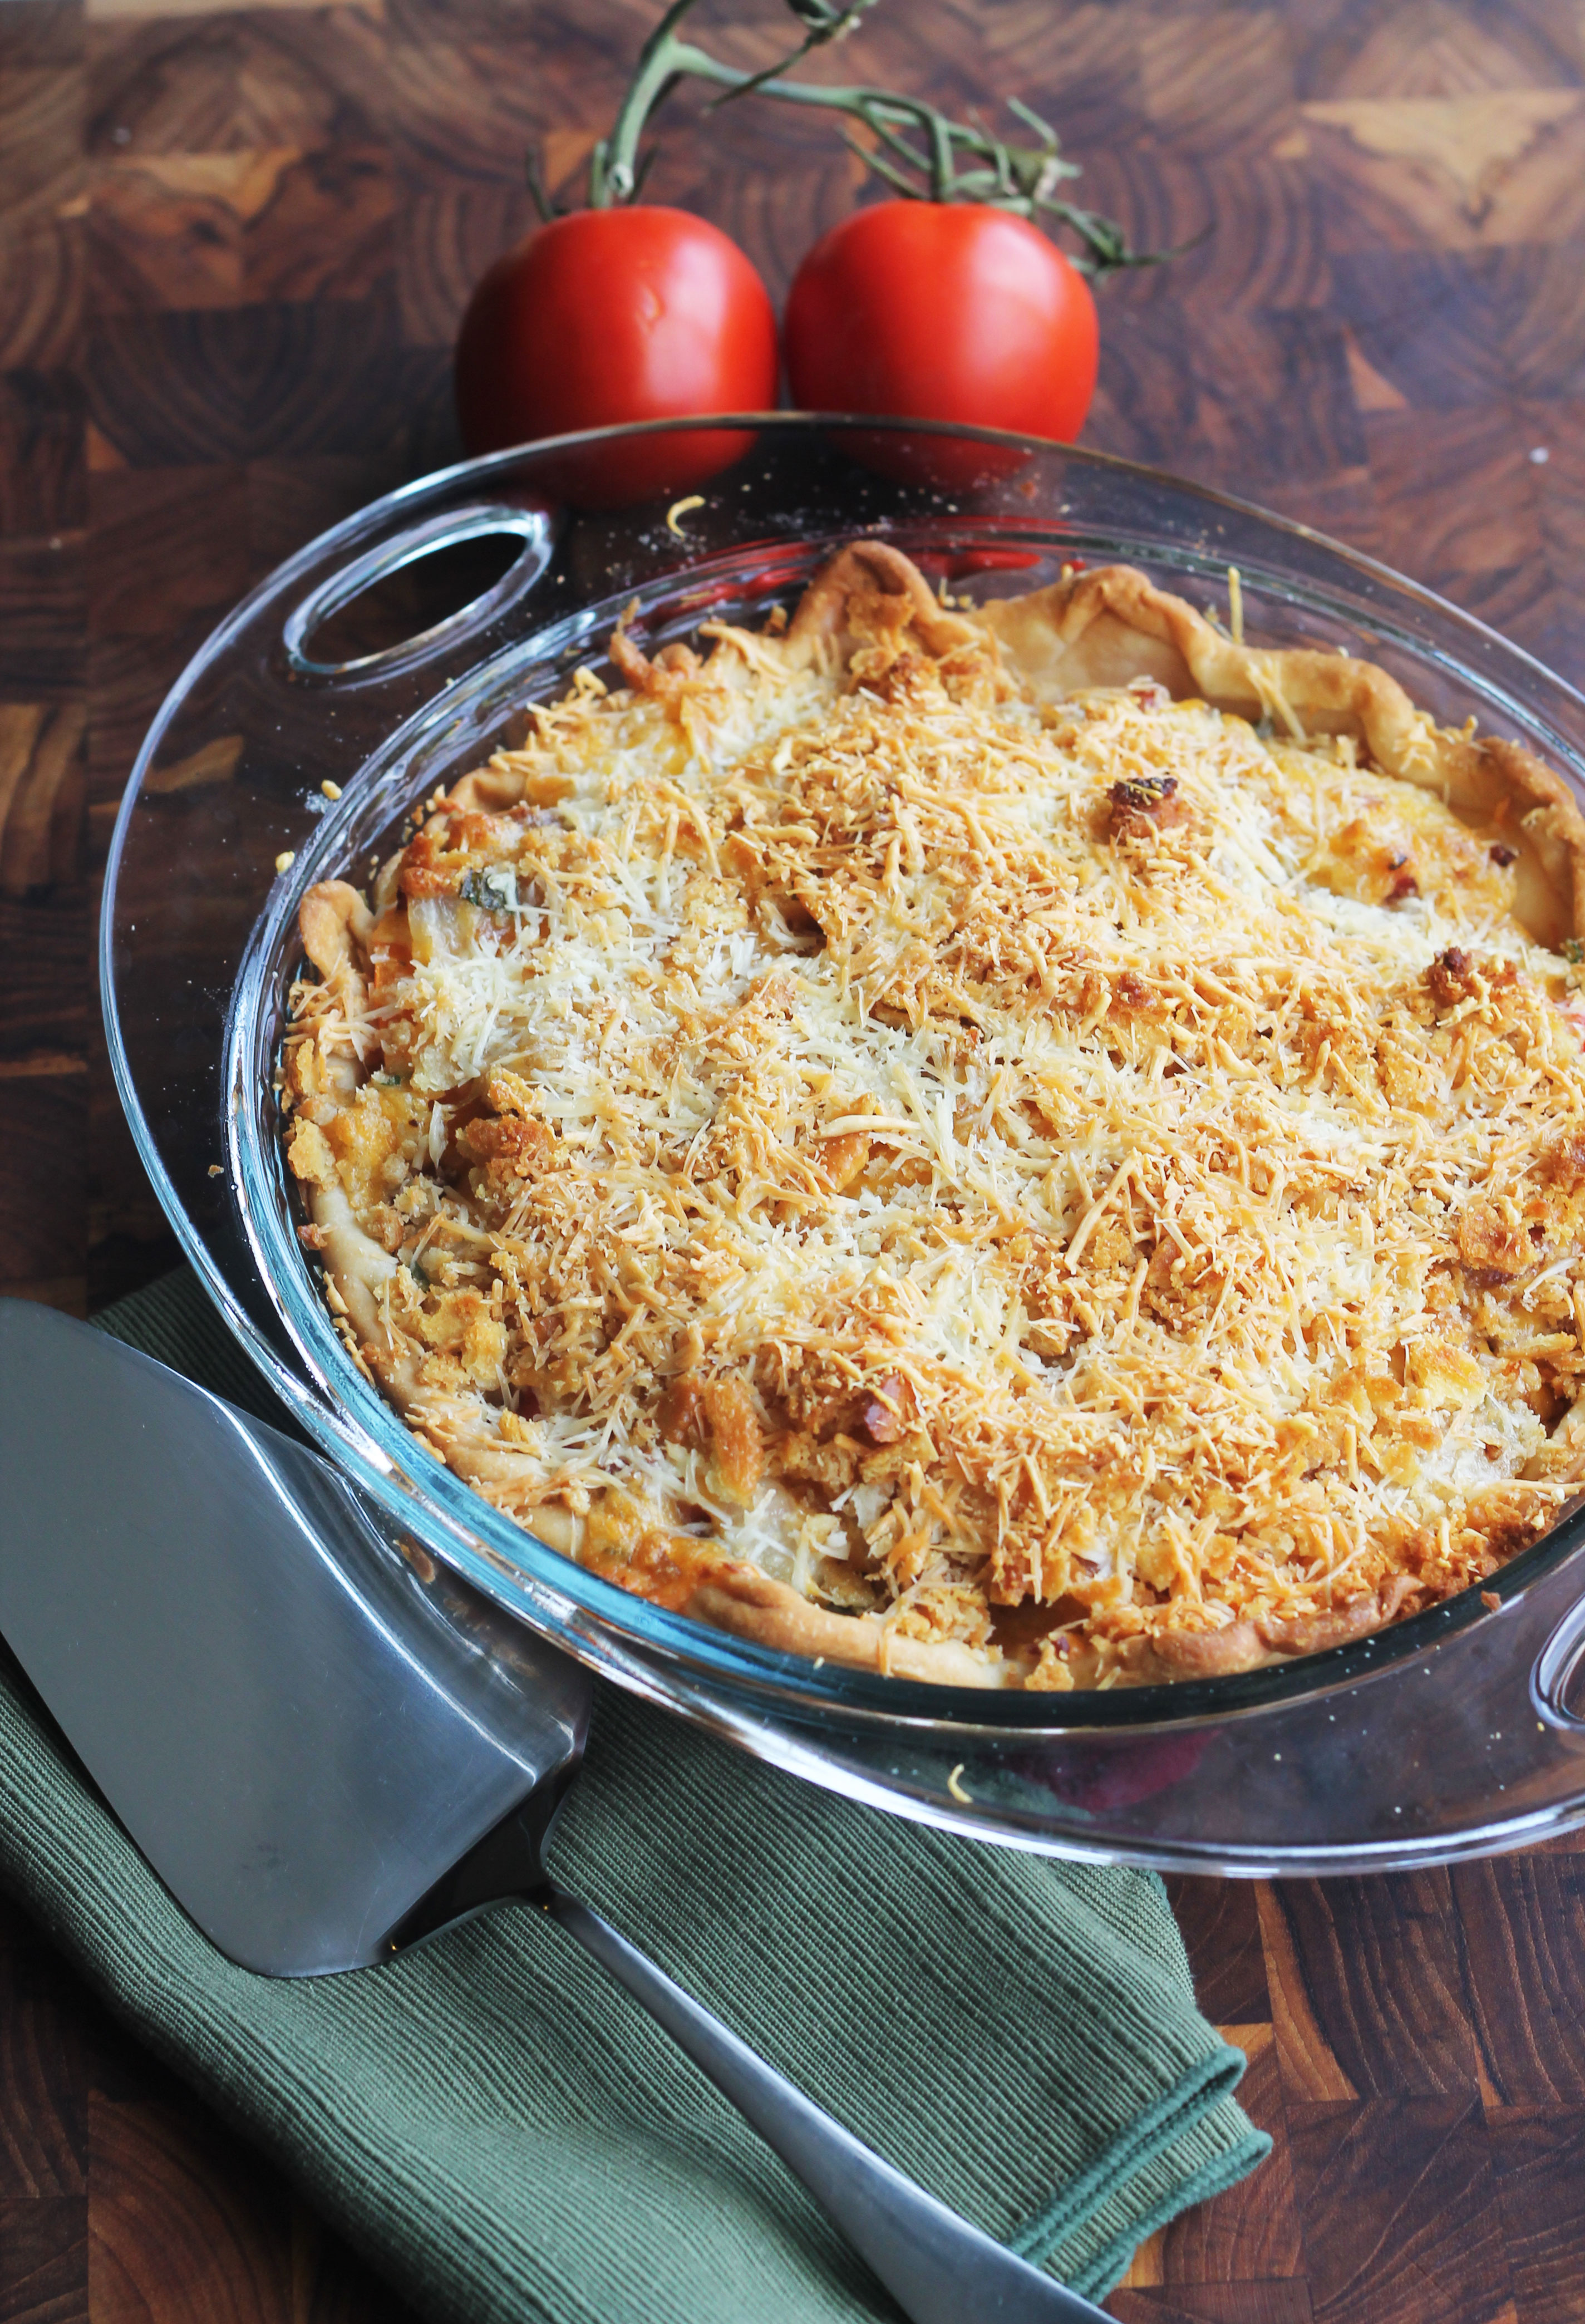 Tomato Onion Bacon Pie - using fresh tomatoes, crisp bacon and sweet caramelized onions